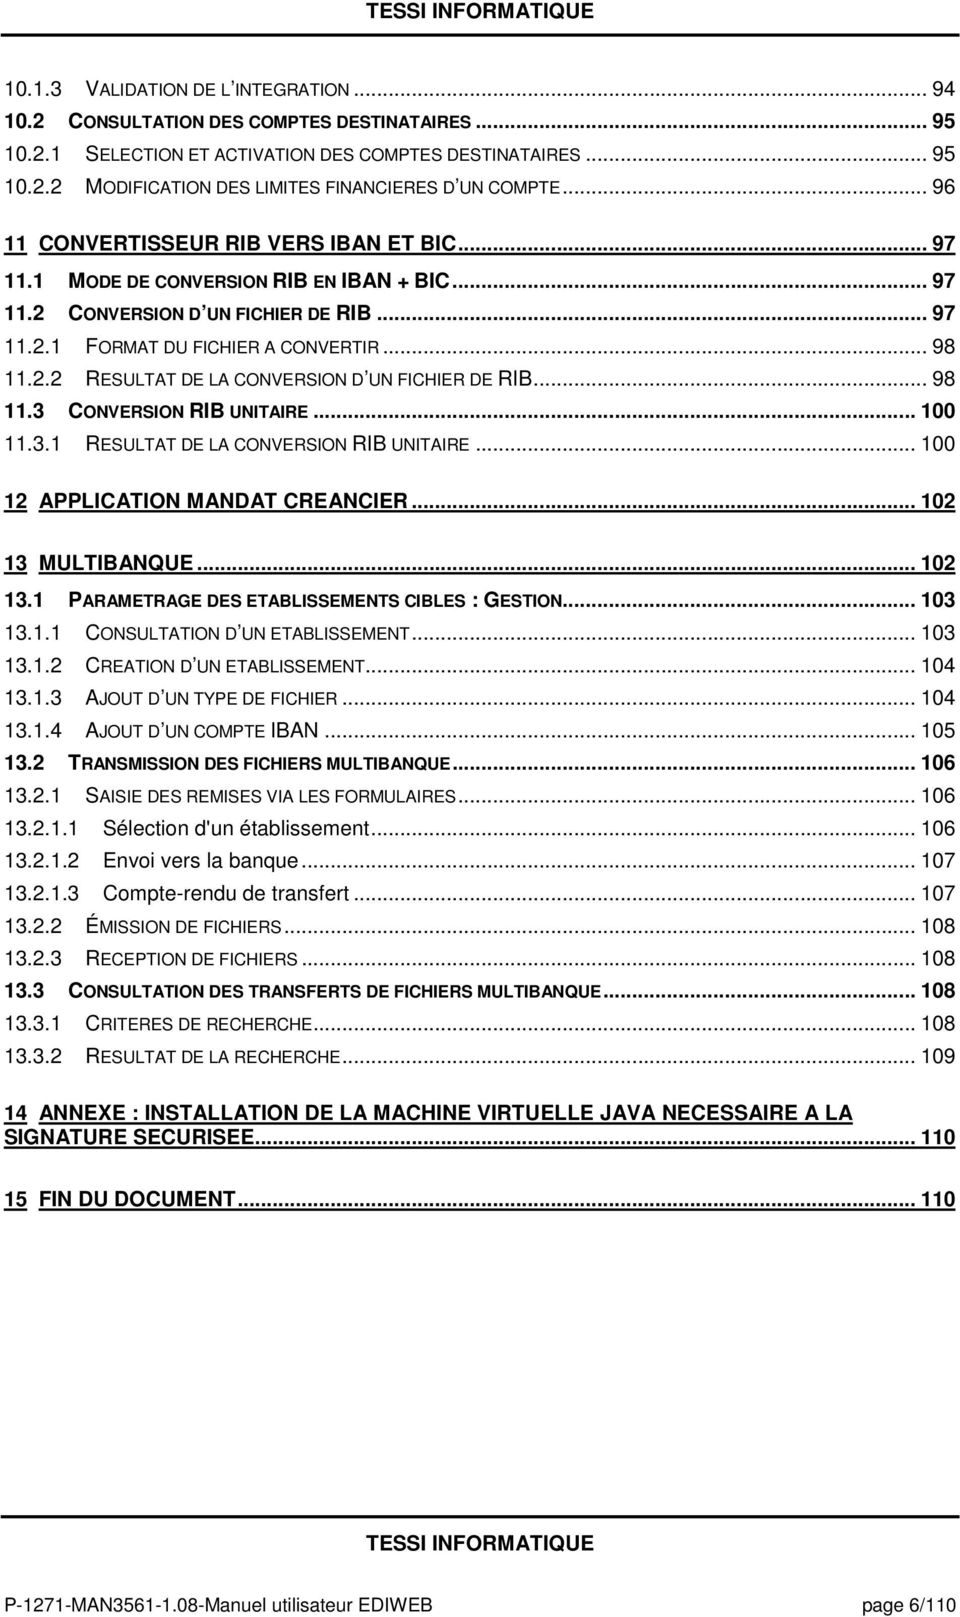 .. 98 11.3 CONVERSION RIB UNITAIRE... 100 11.3.1 RESULTAT DE LA CONVERSION RIB UNITAIRE... 100 12 APPLICATION MANDAT CREANCIER... 102 13 MULTIBANQUE... 102 13.1 PARAMETRAGE DES ETABLISSEMENTS CIBLES : GESTION.